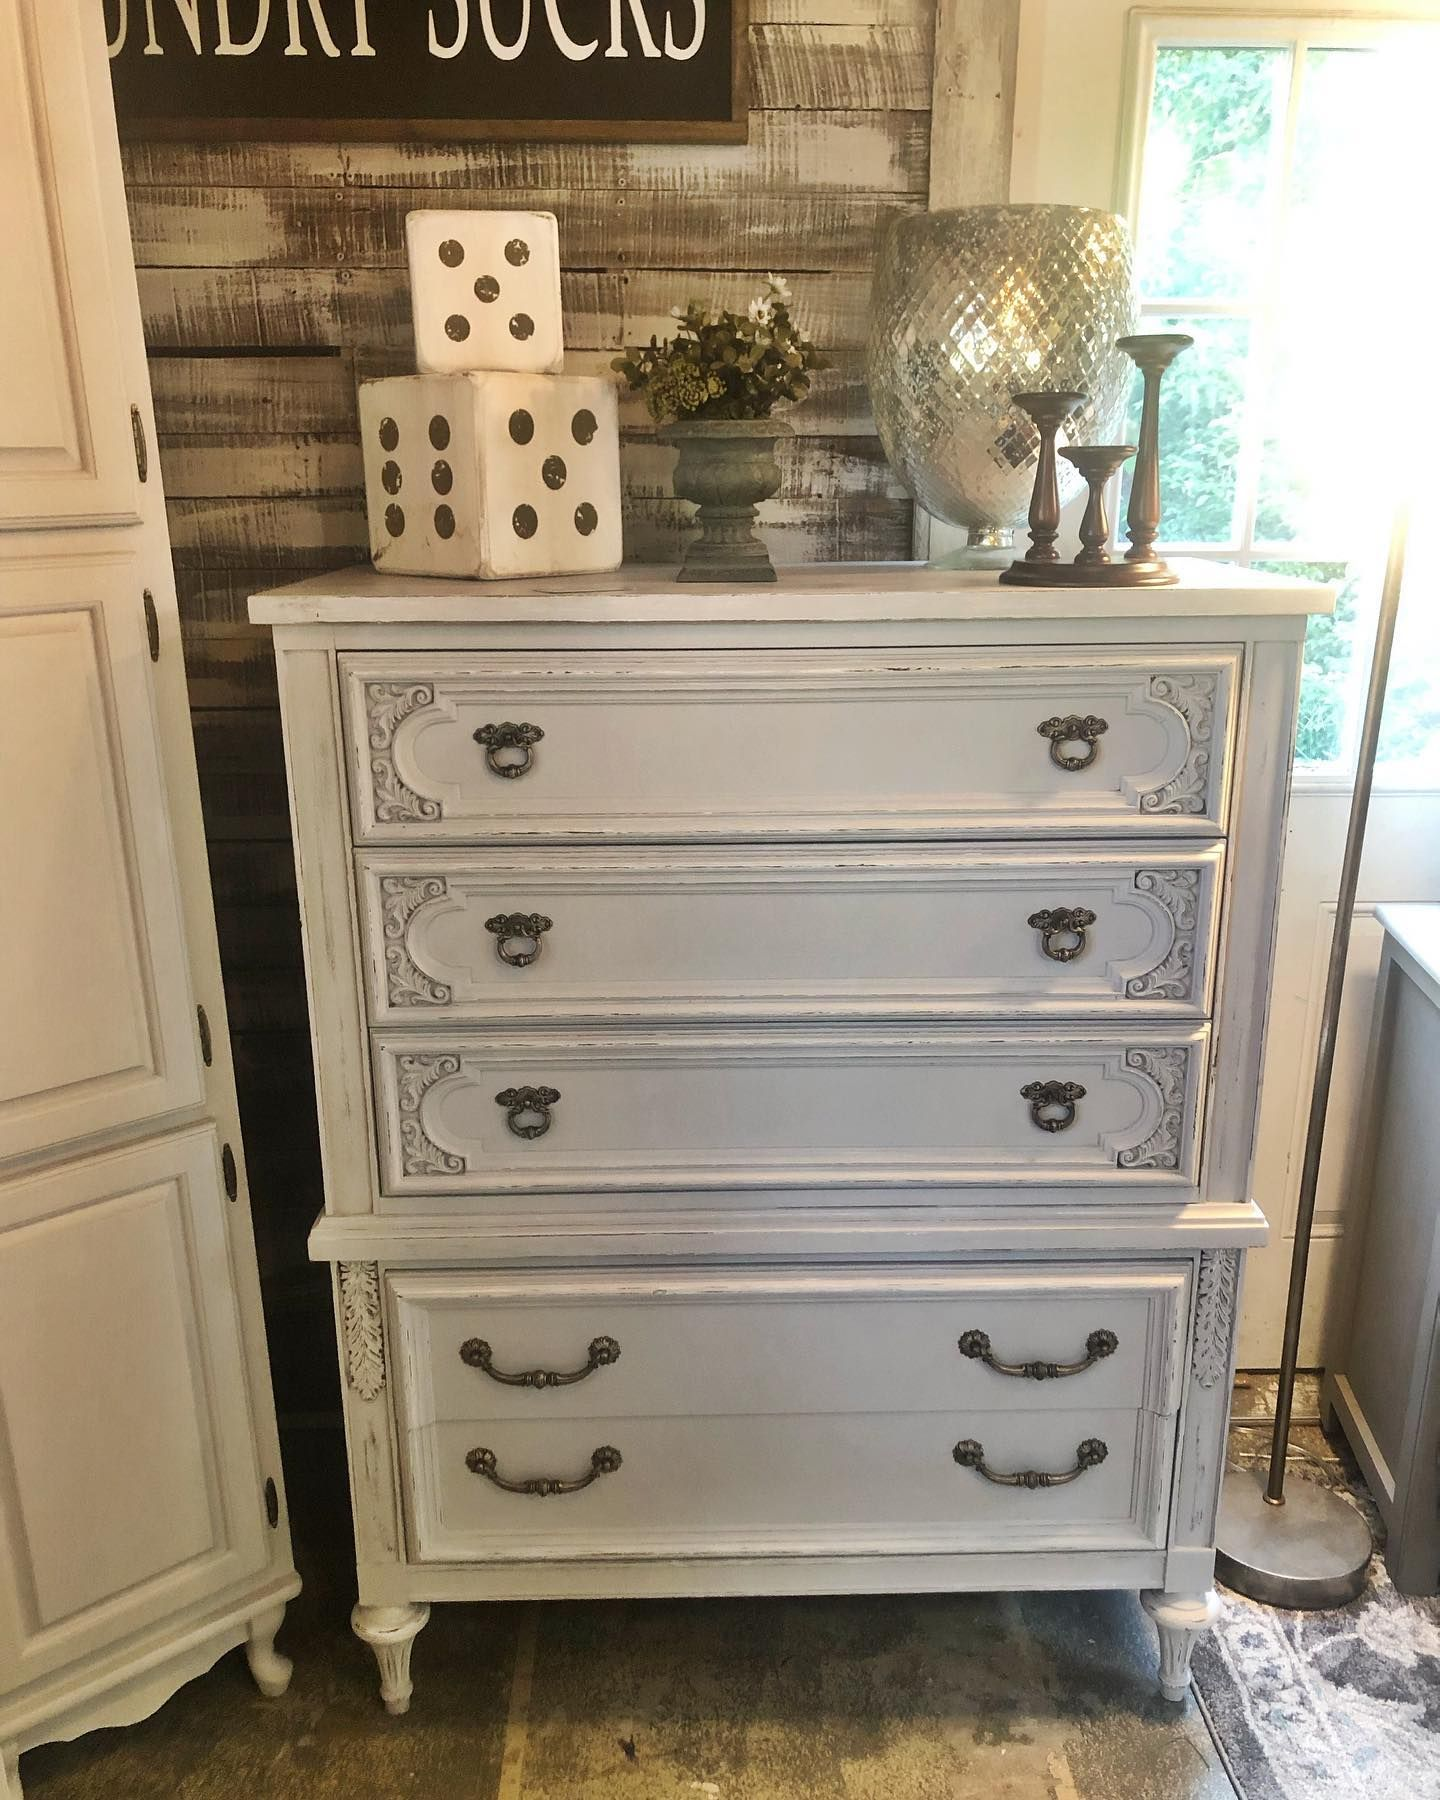 Light Gray Clay Furniture Paint Faded Gray Mudpaint Furniture Paint Gray Painted Furniture Painted Furniture French Painted Furniture [ 1800 x 1440 Pixel ]